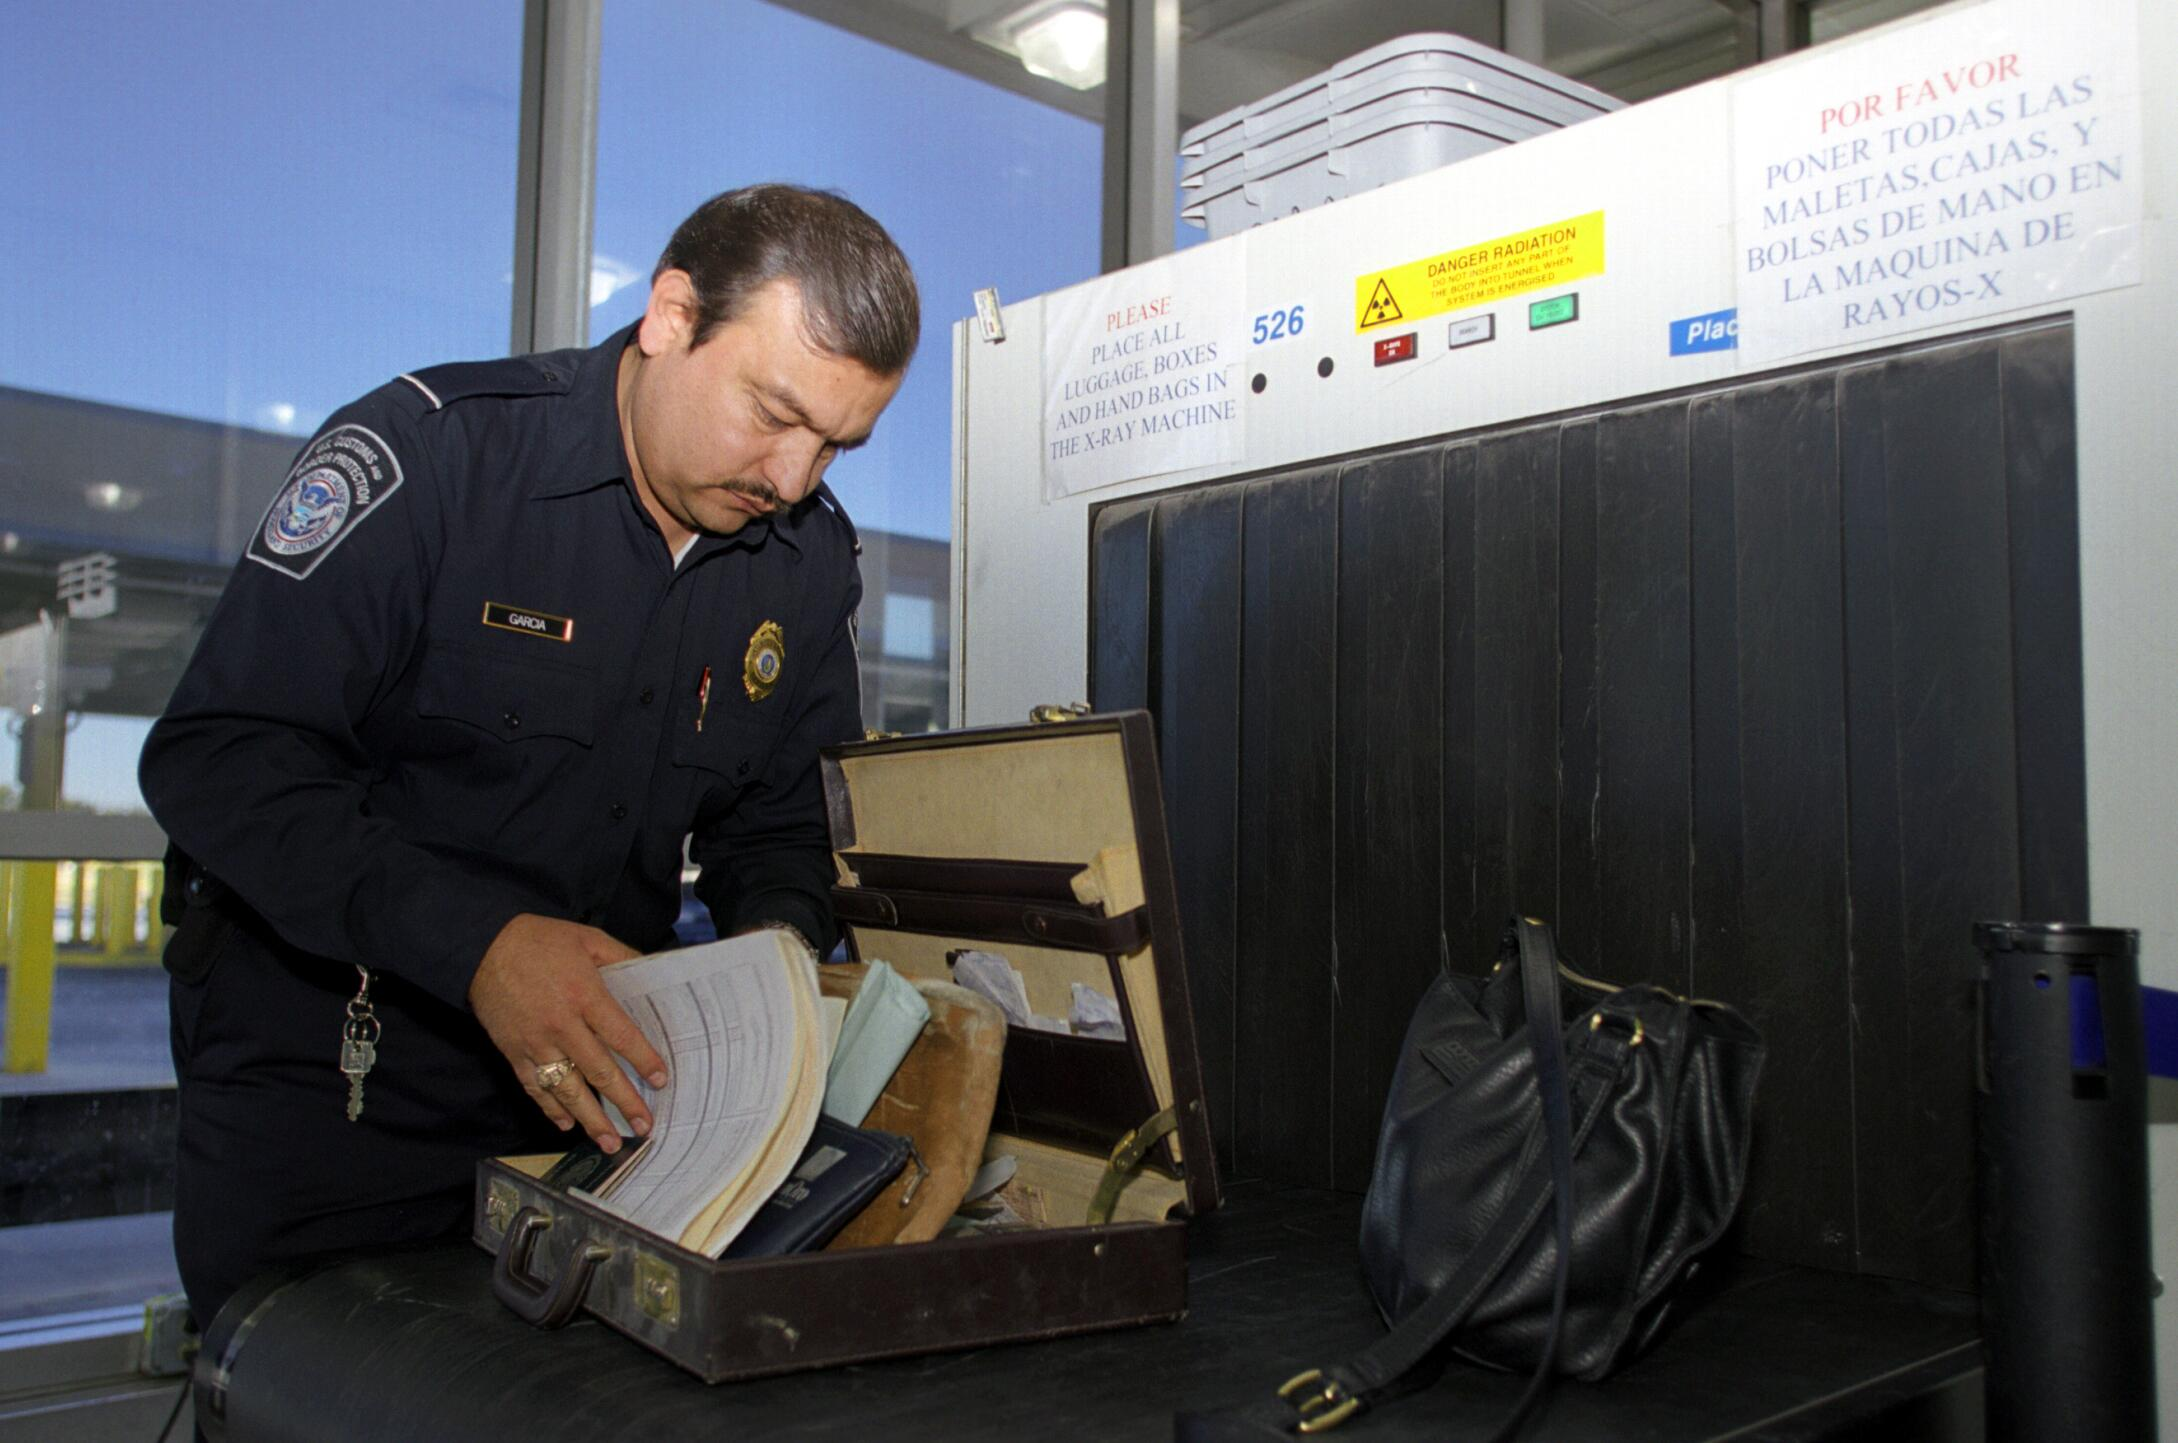 A CBP officer checks an individual's luggage after being x-rayed.